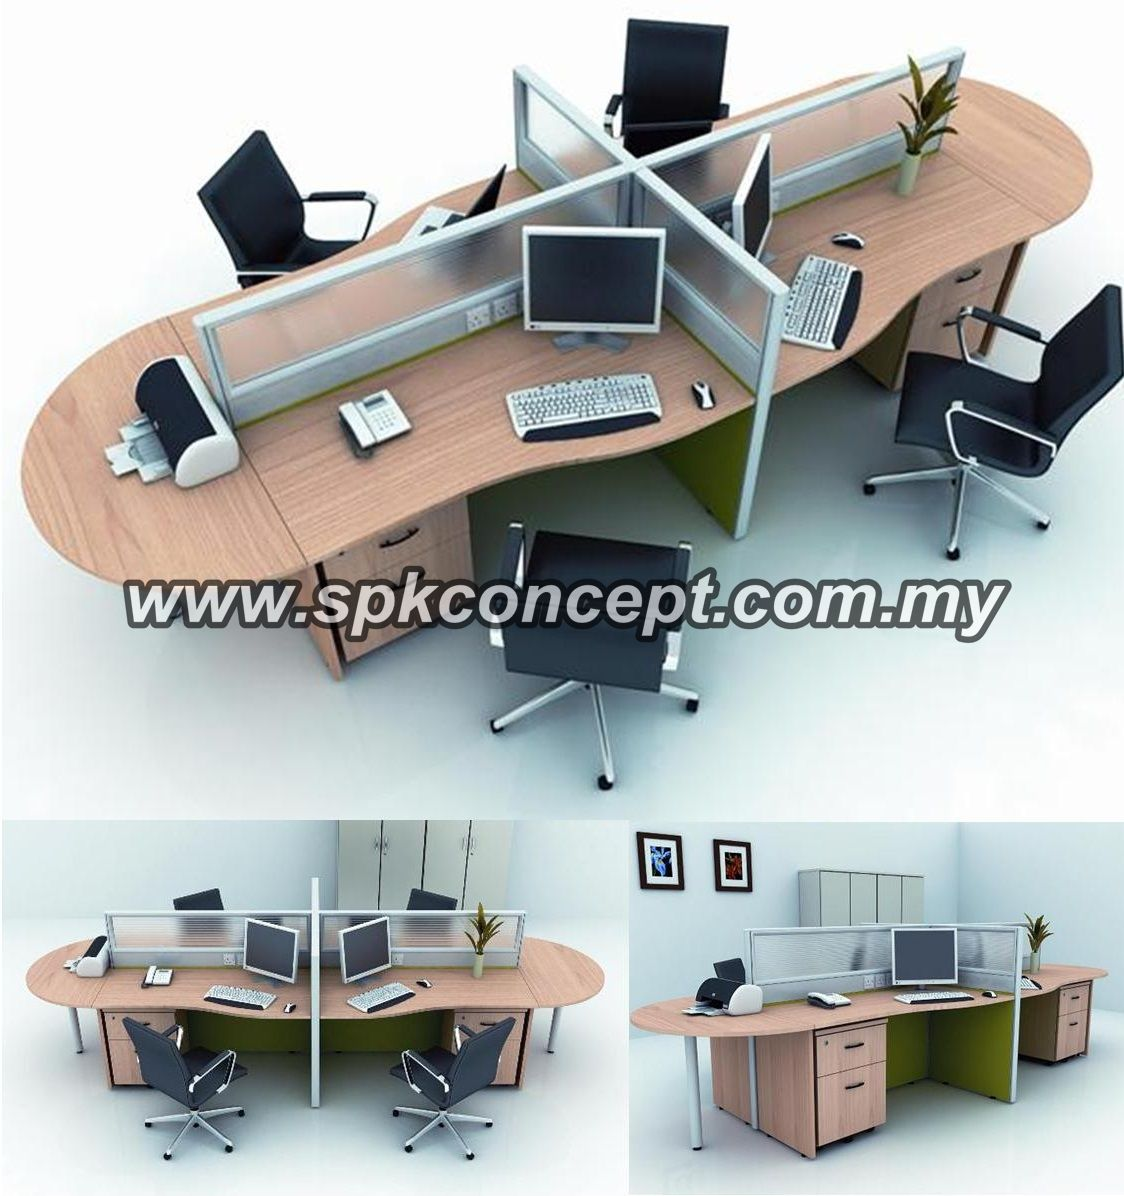 Open Plan System Shah Alam Selangor Malaysia Open Concept System Malaysia Office Furniture Office Chair Office Open Plan System Library Shelving System Office Renovation Works